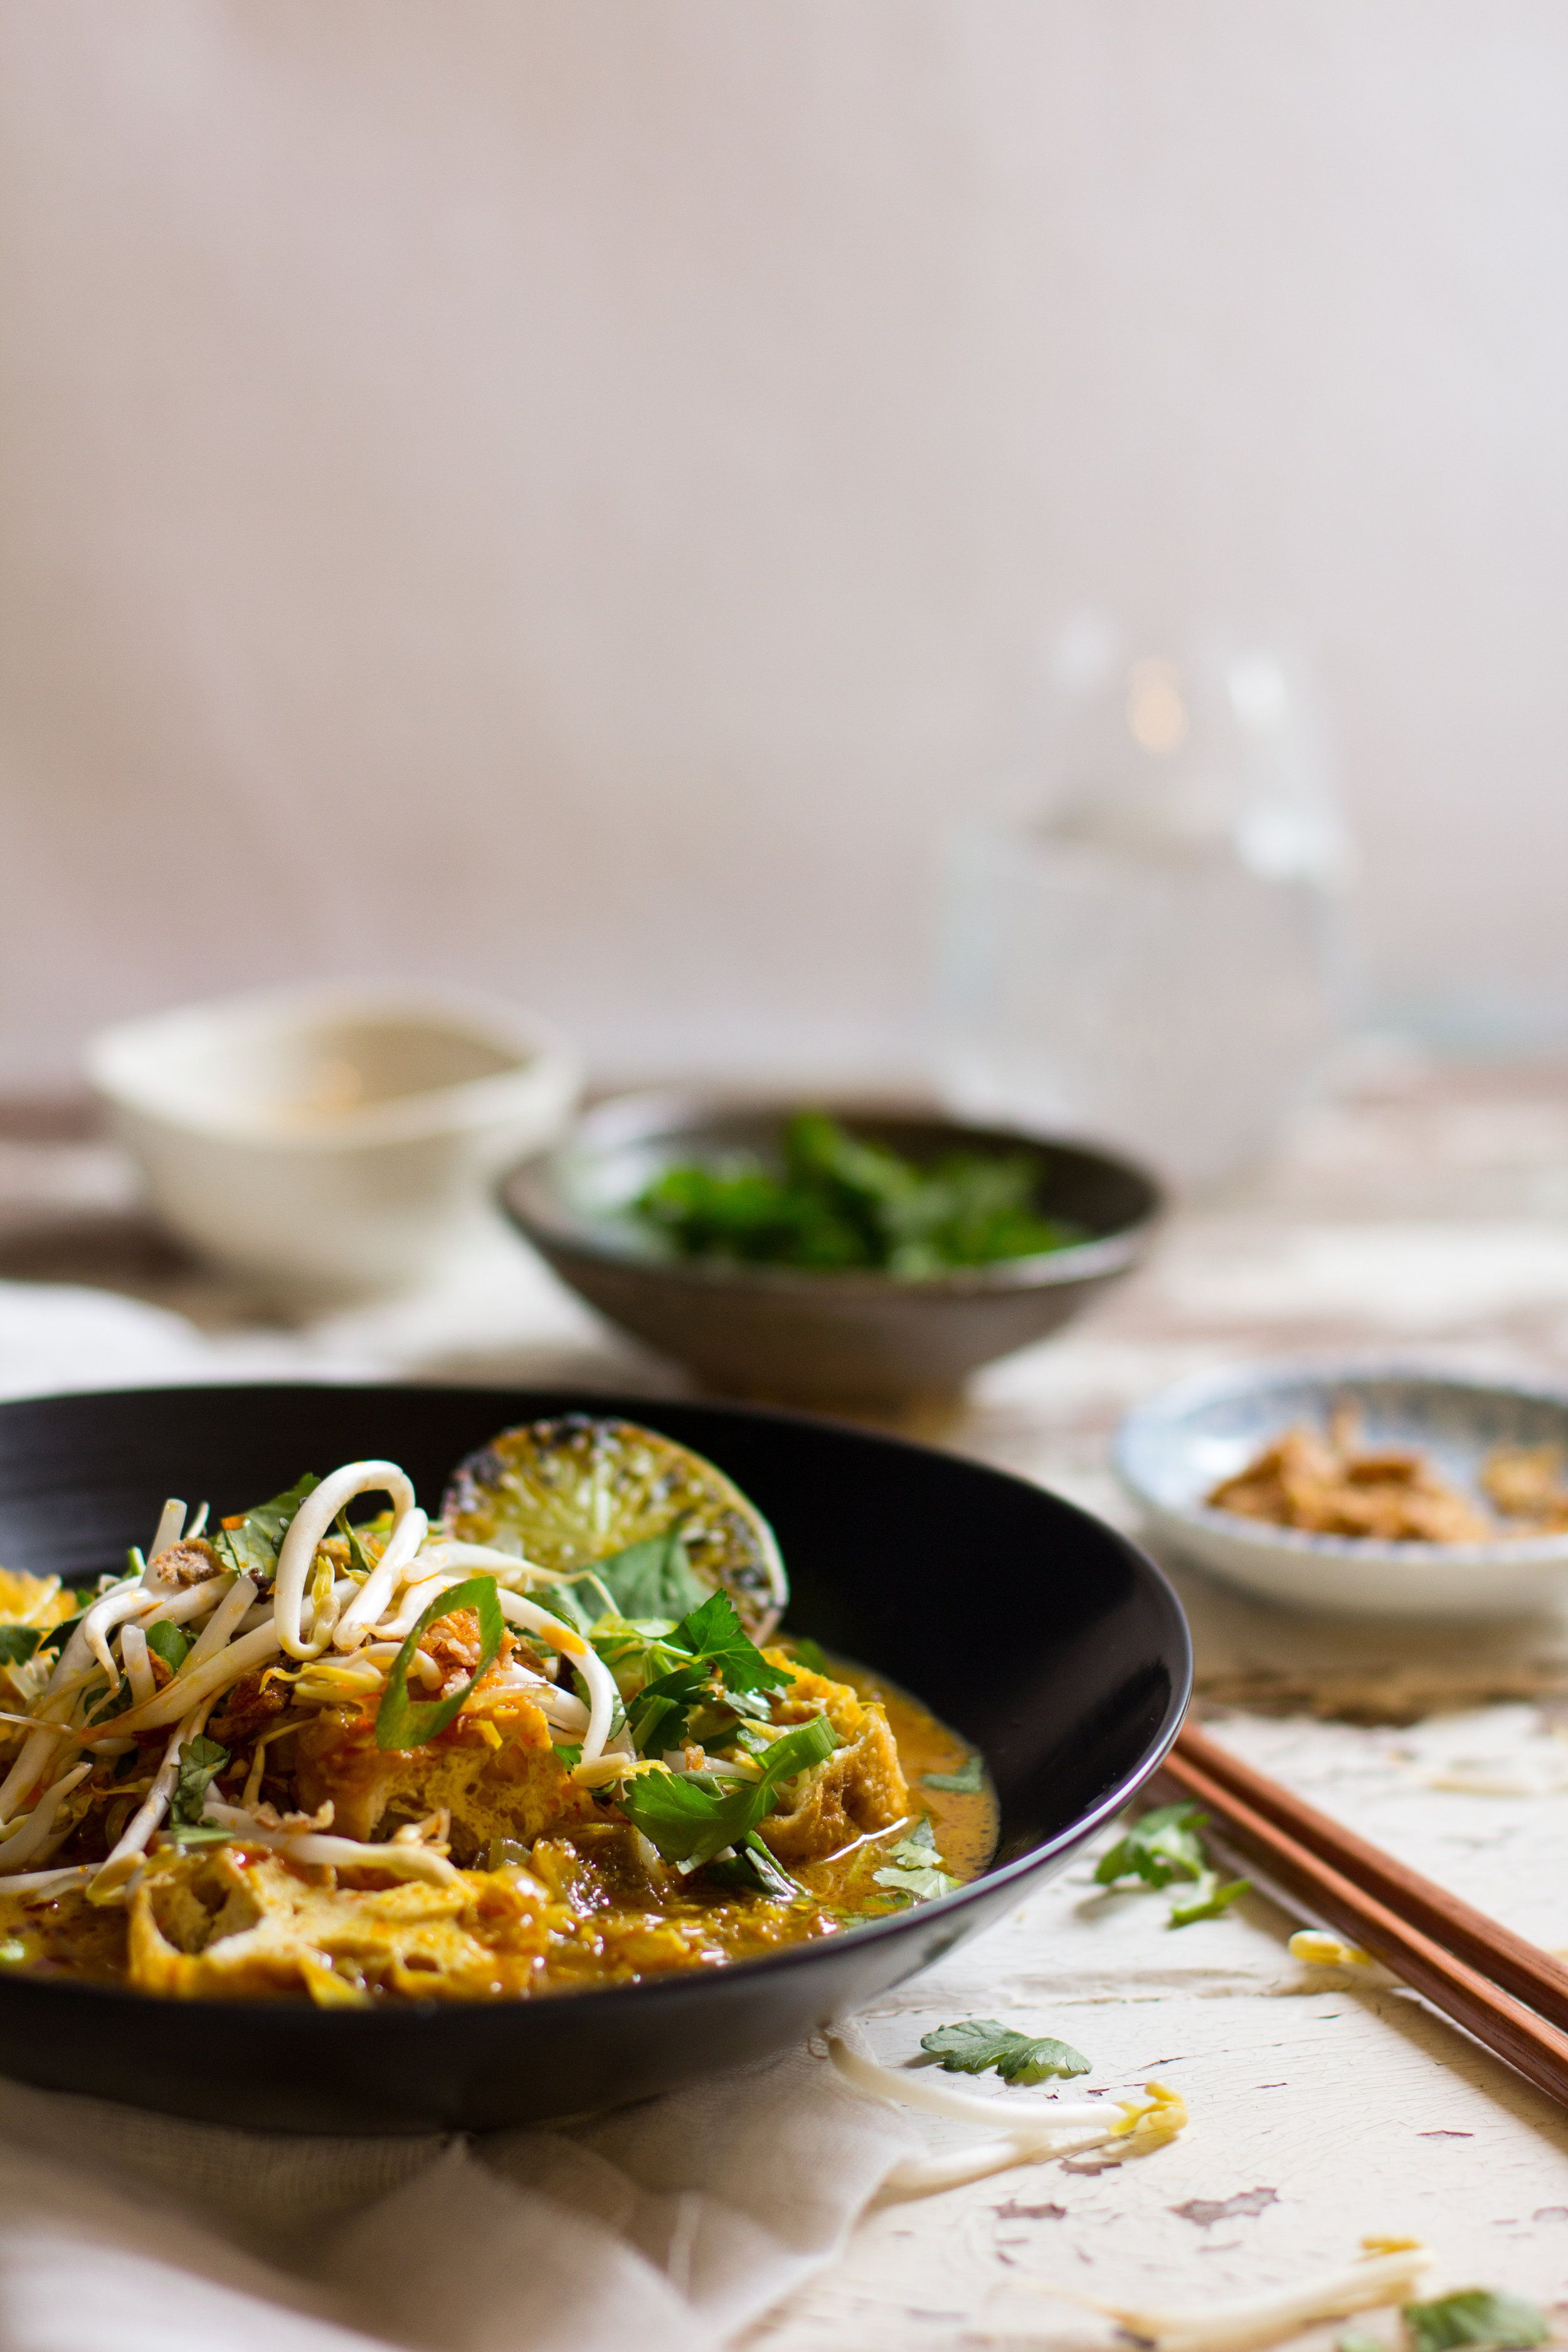 Fresh and fragrant, this curry noodle soup is filled with the flavours of lemongrass, lime leaves and ...